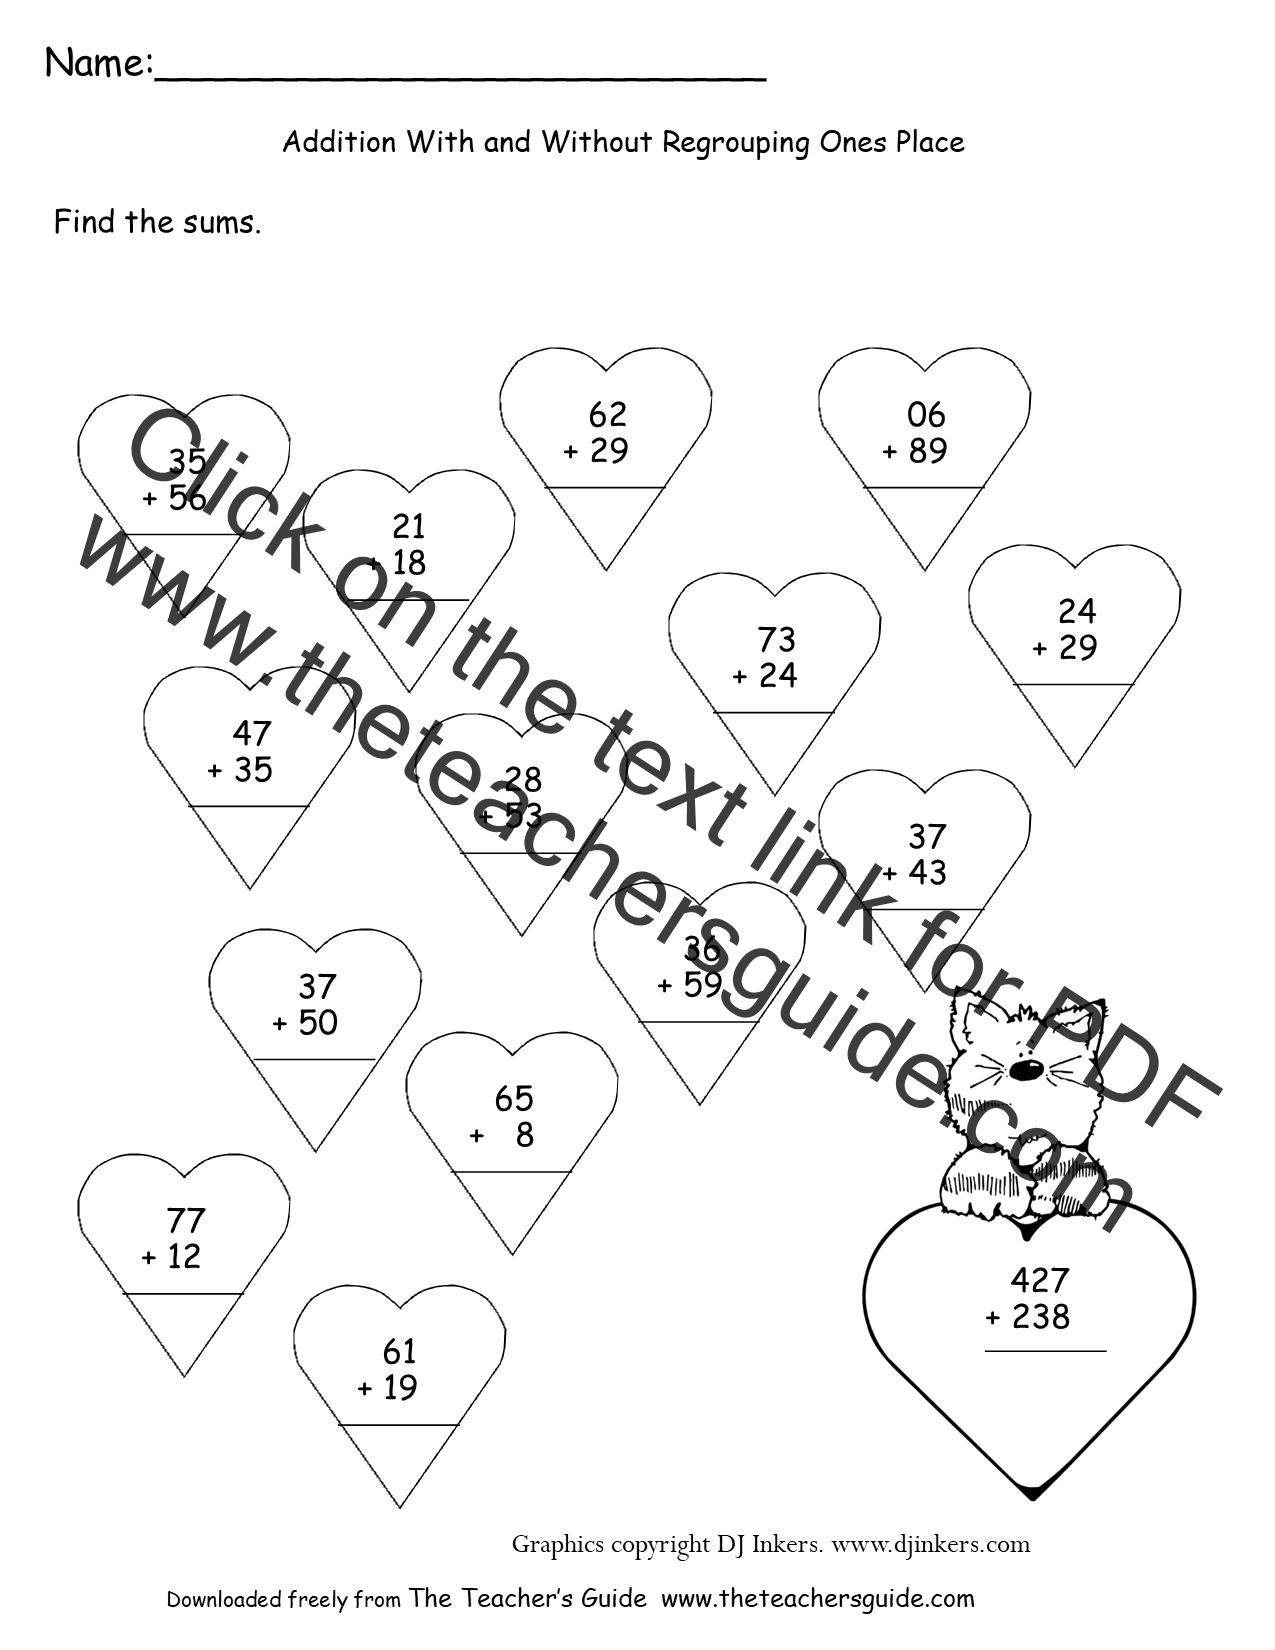 Teaching Regrouping Addition Lawteched – Three Digit Addition with Regrouping Worksheets 2nd Grade